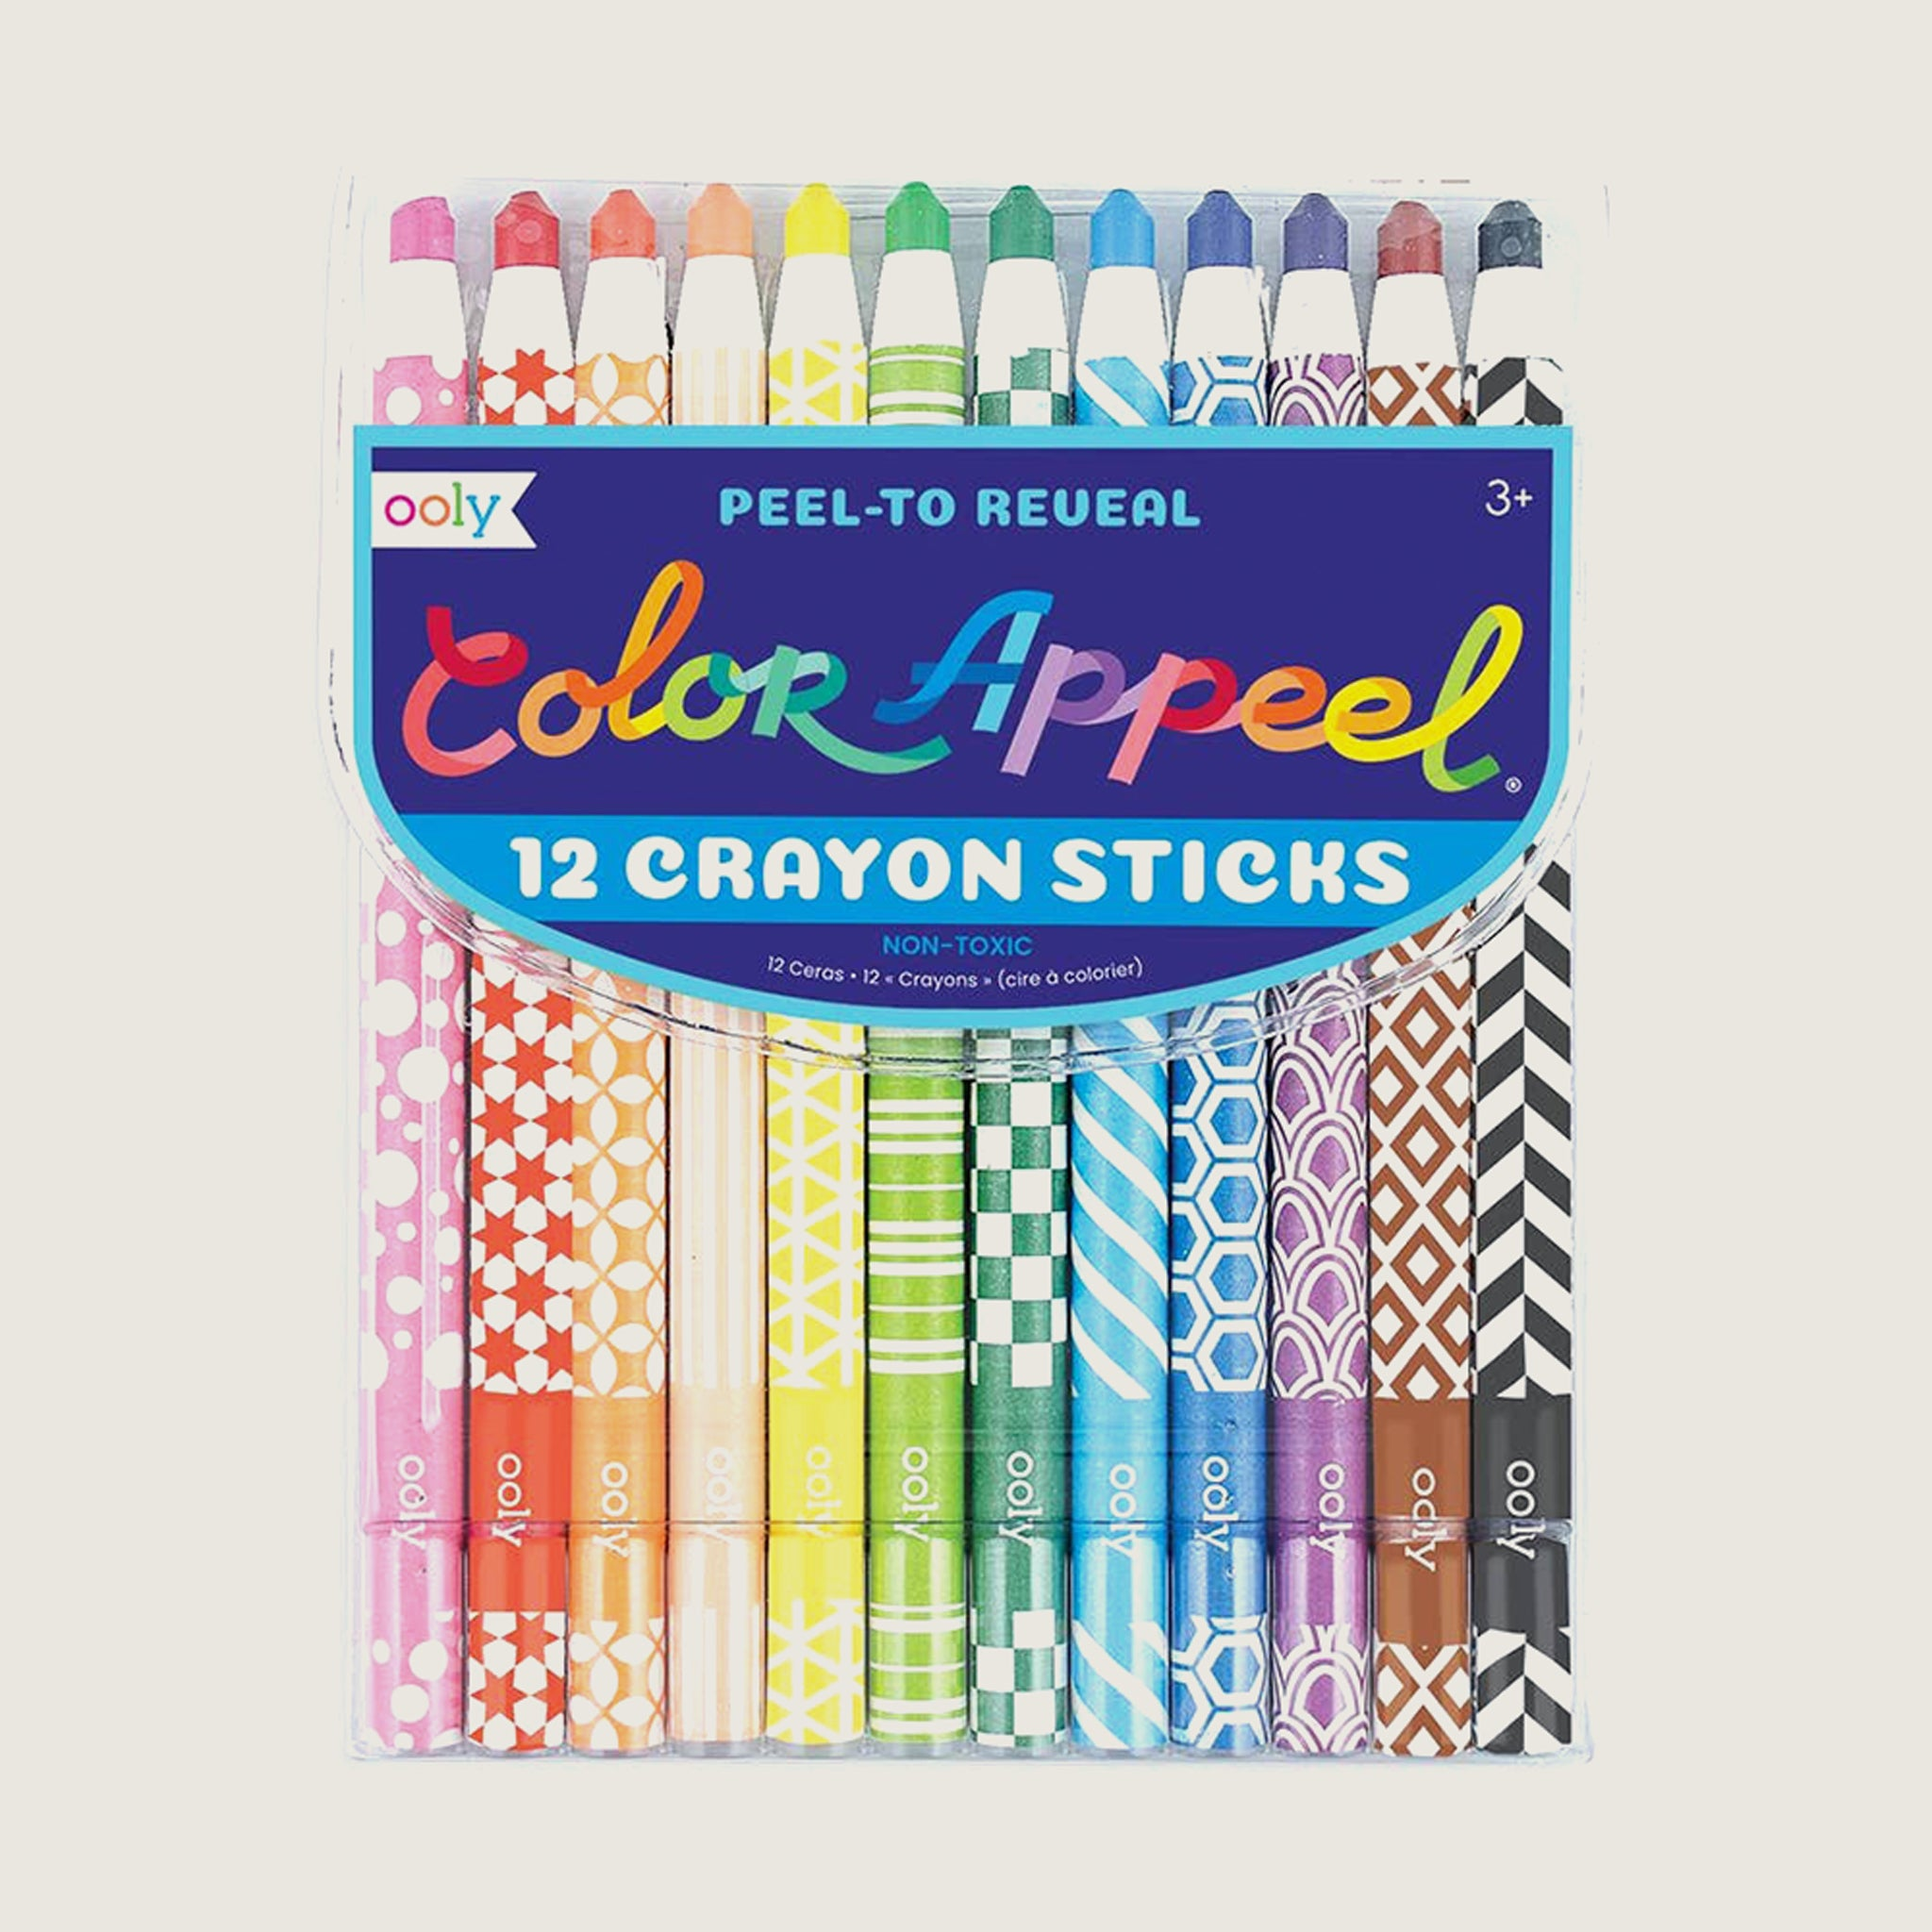 Color Apeel Crayon Sticks - Blackbird General Store